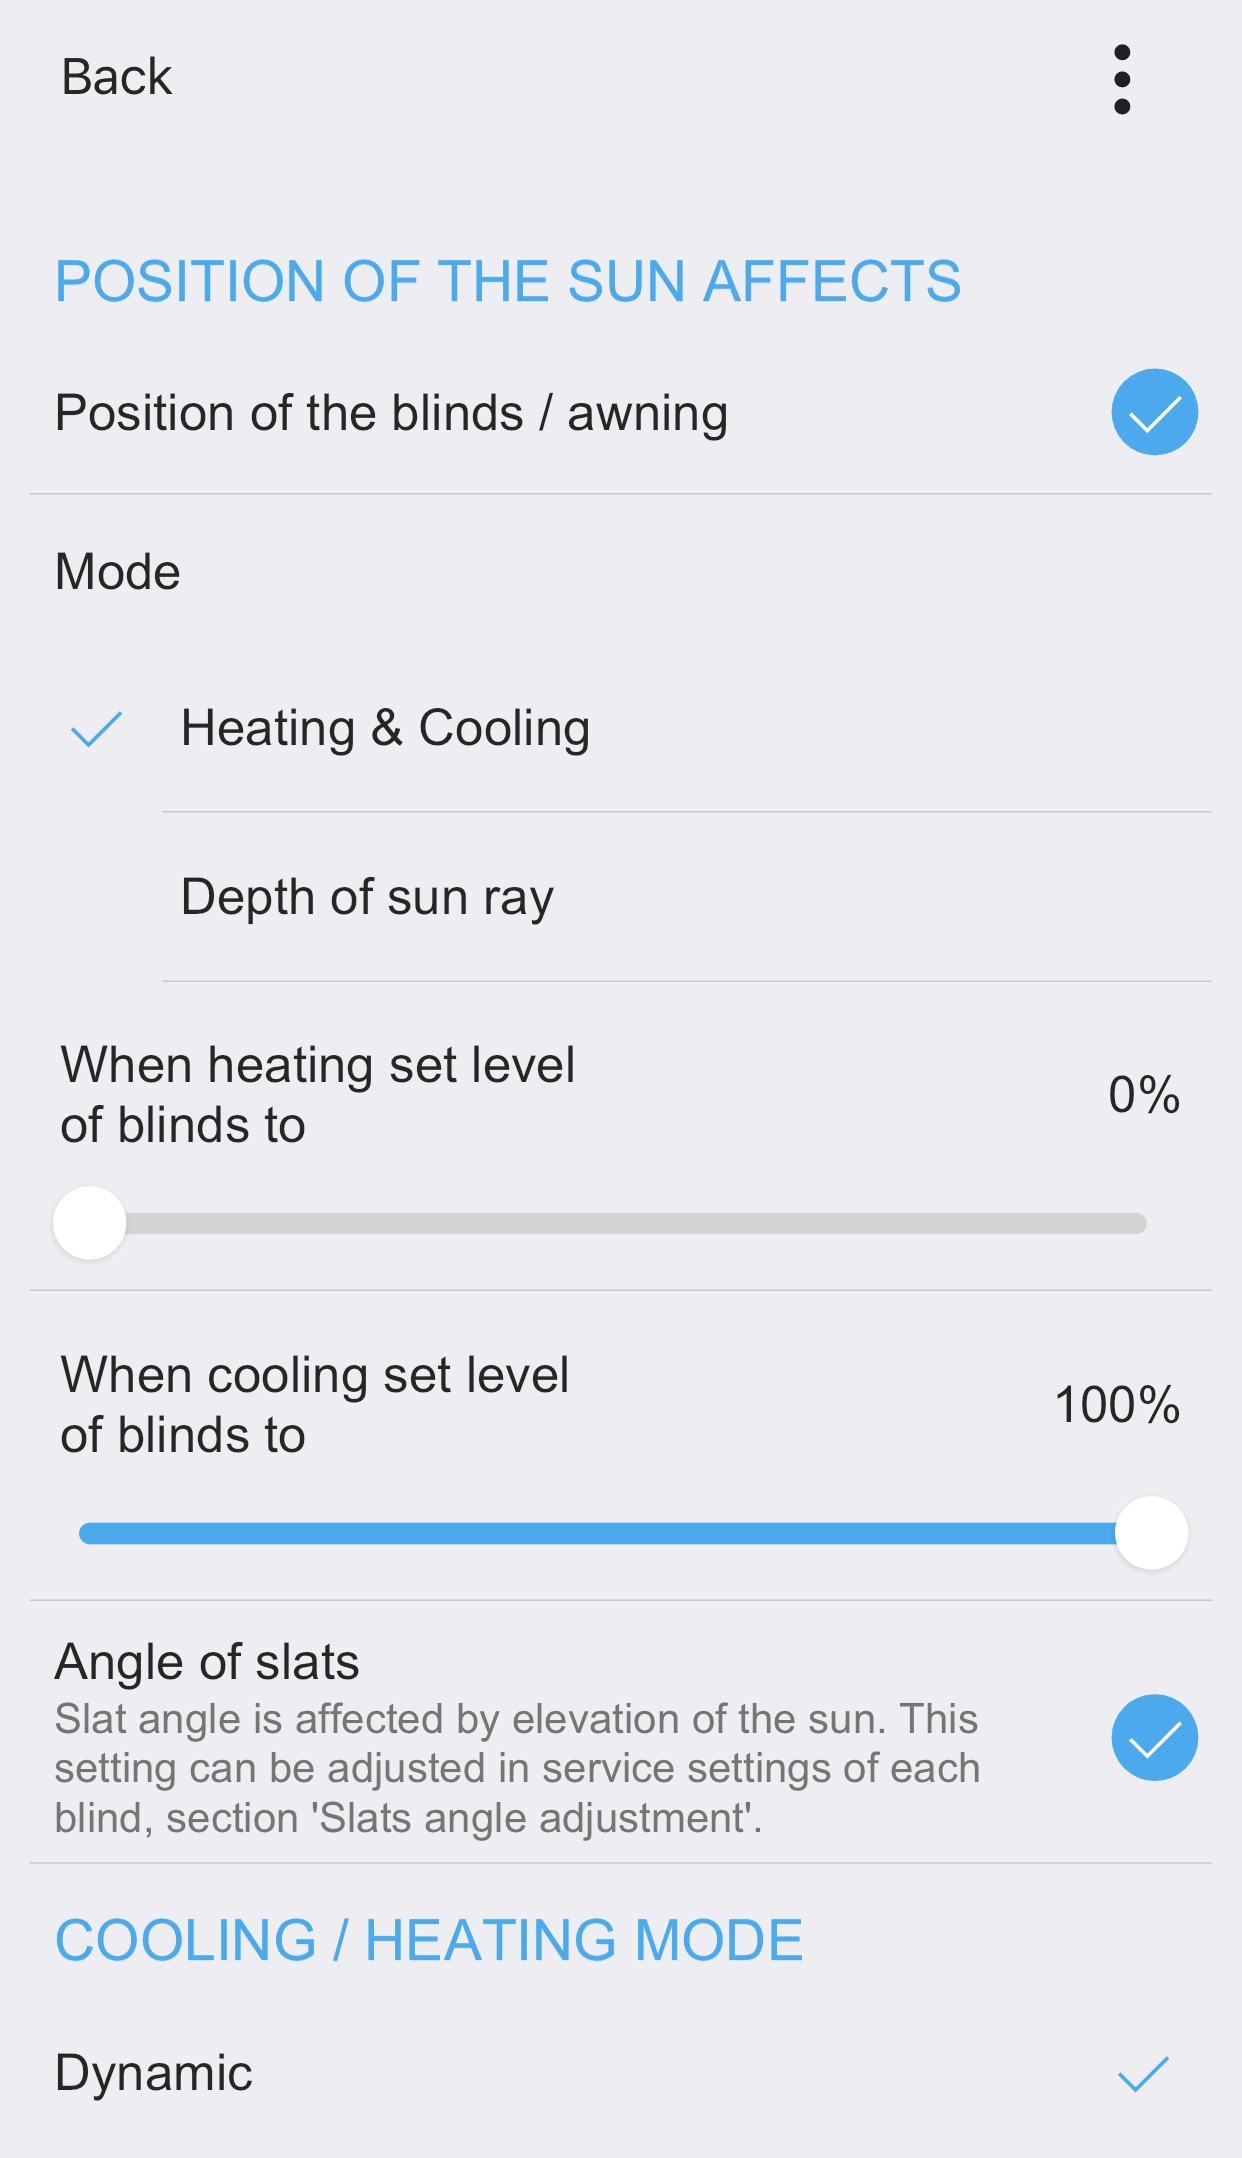 Heating / cooling mode